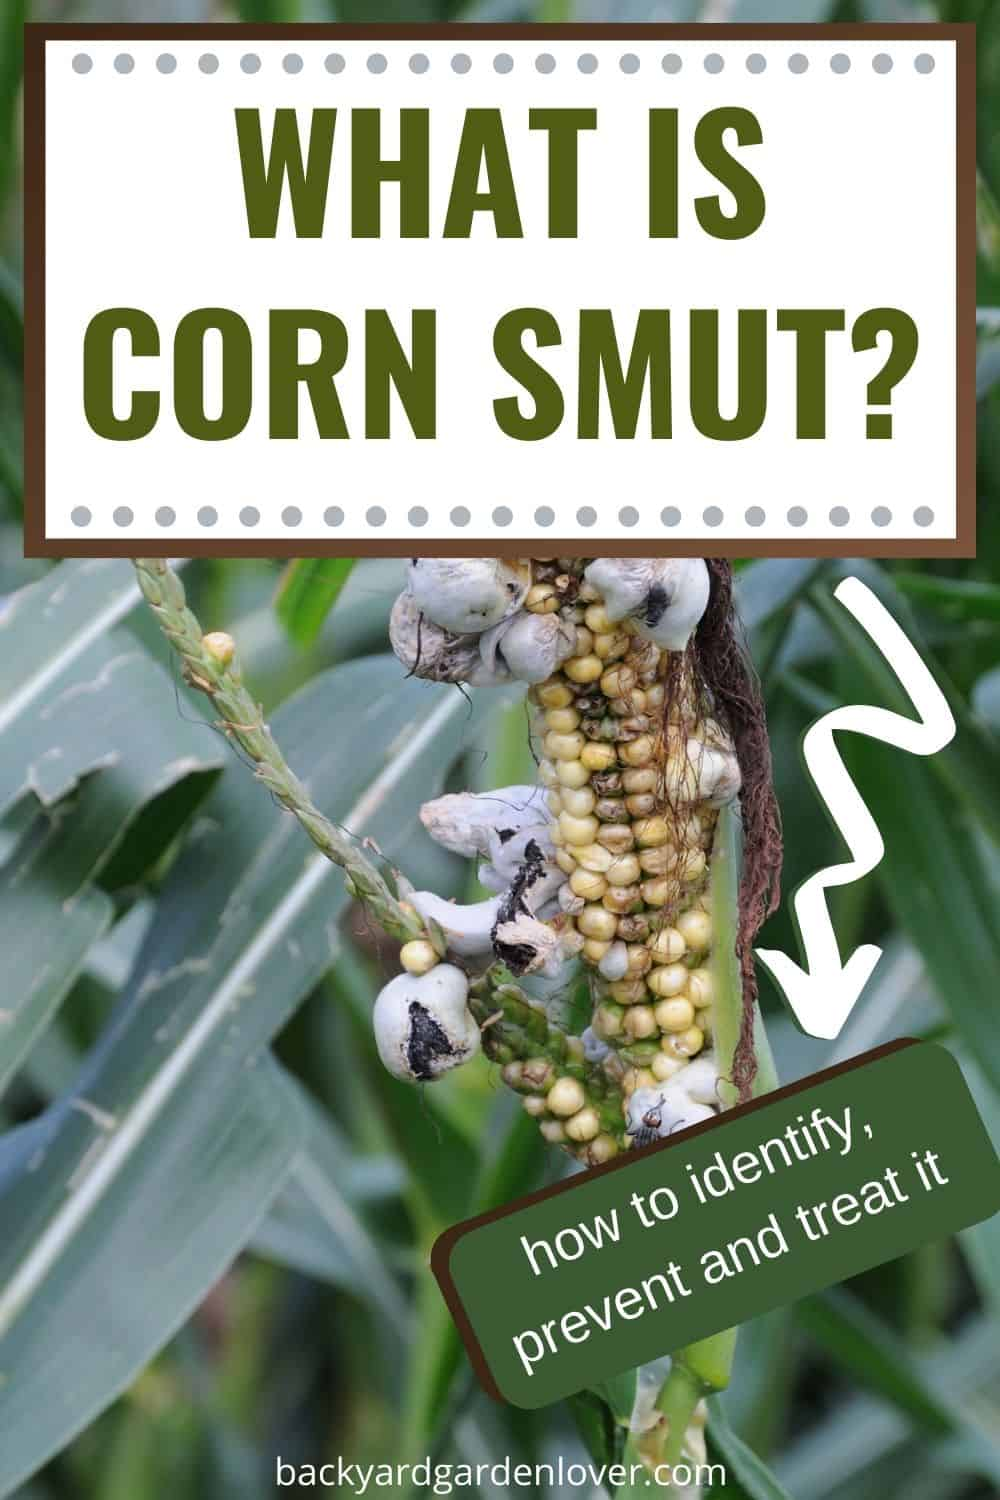 What is corn smut - Pinterest image